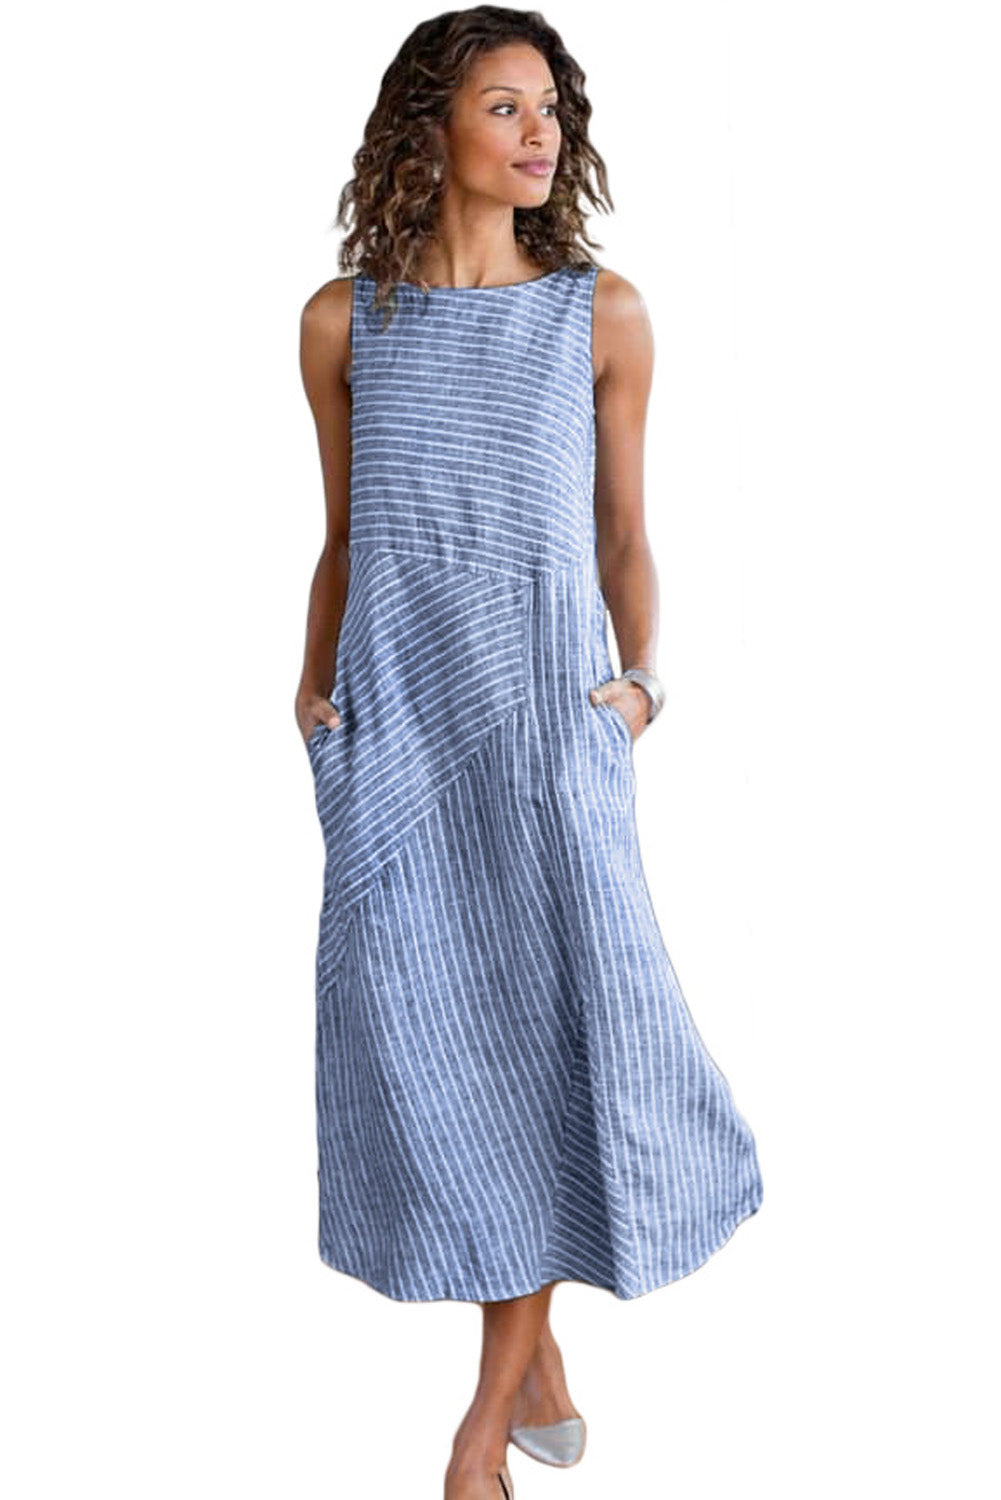 Sky Blue Crew Neck Striped Shift Daily Dress